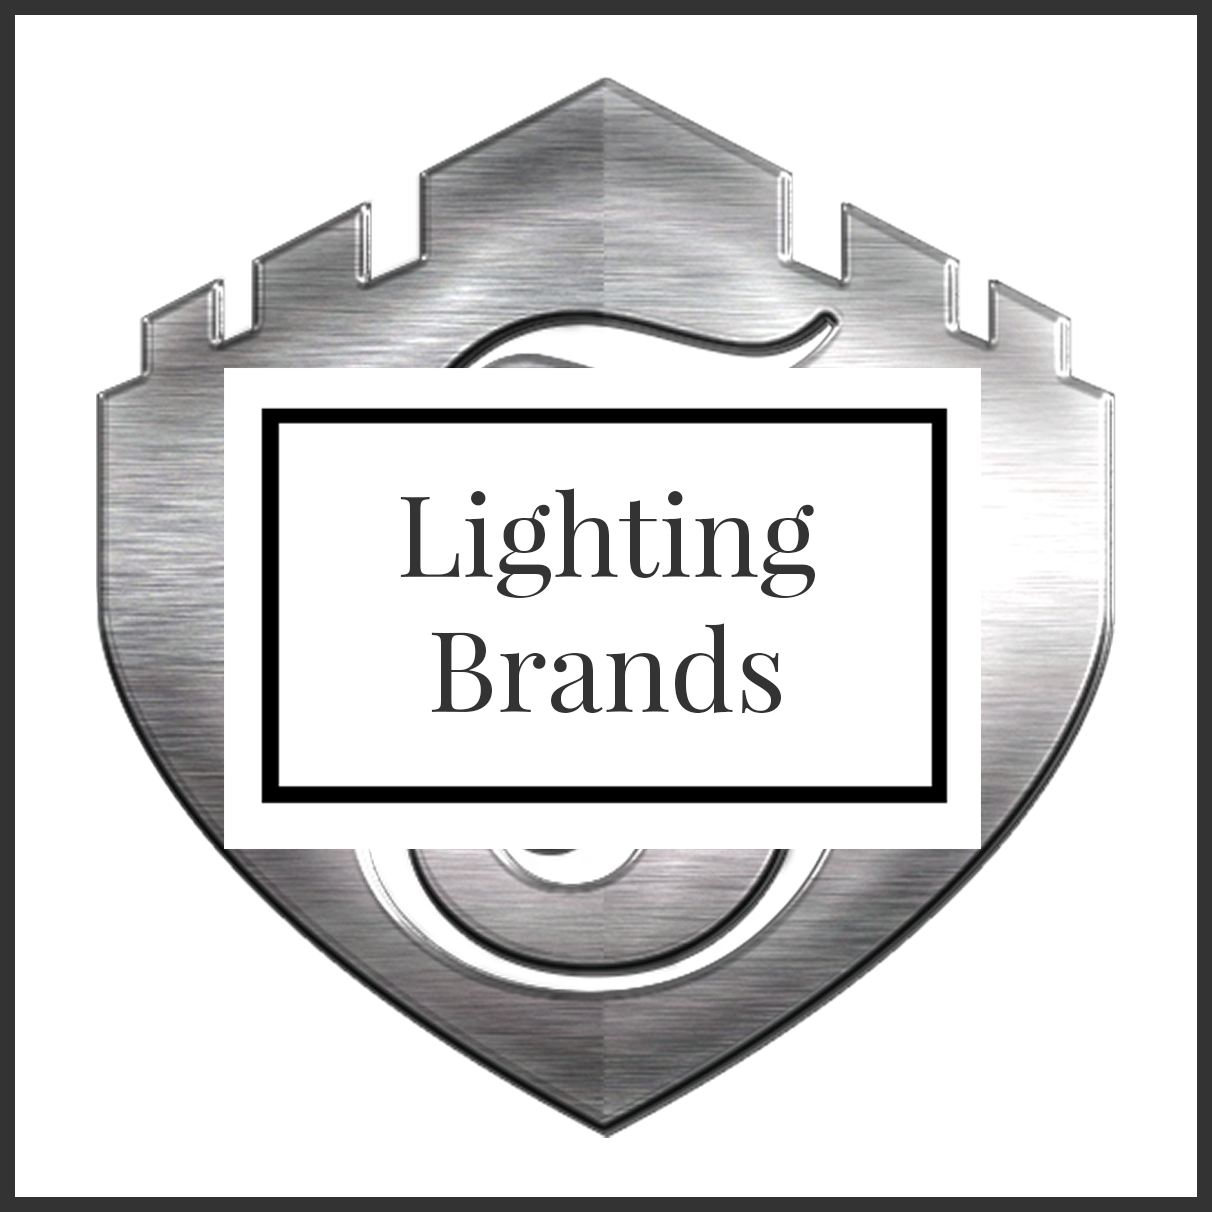 Lighting Brands